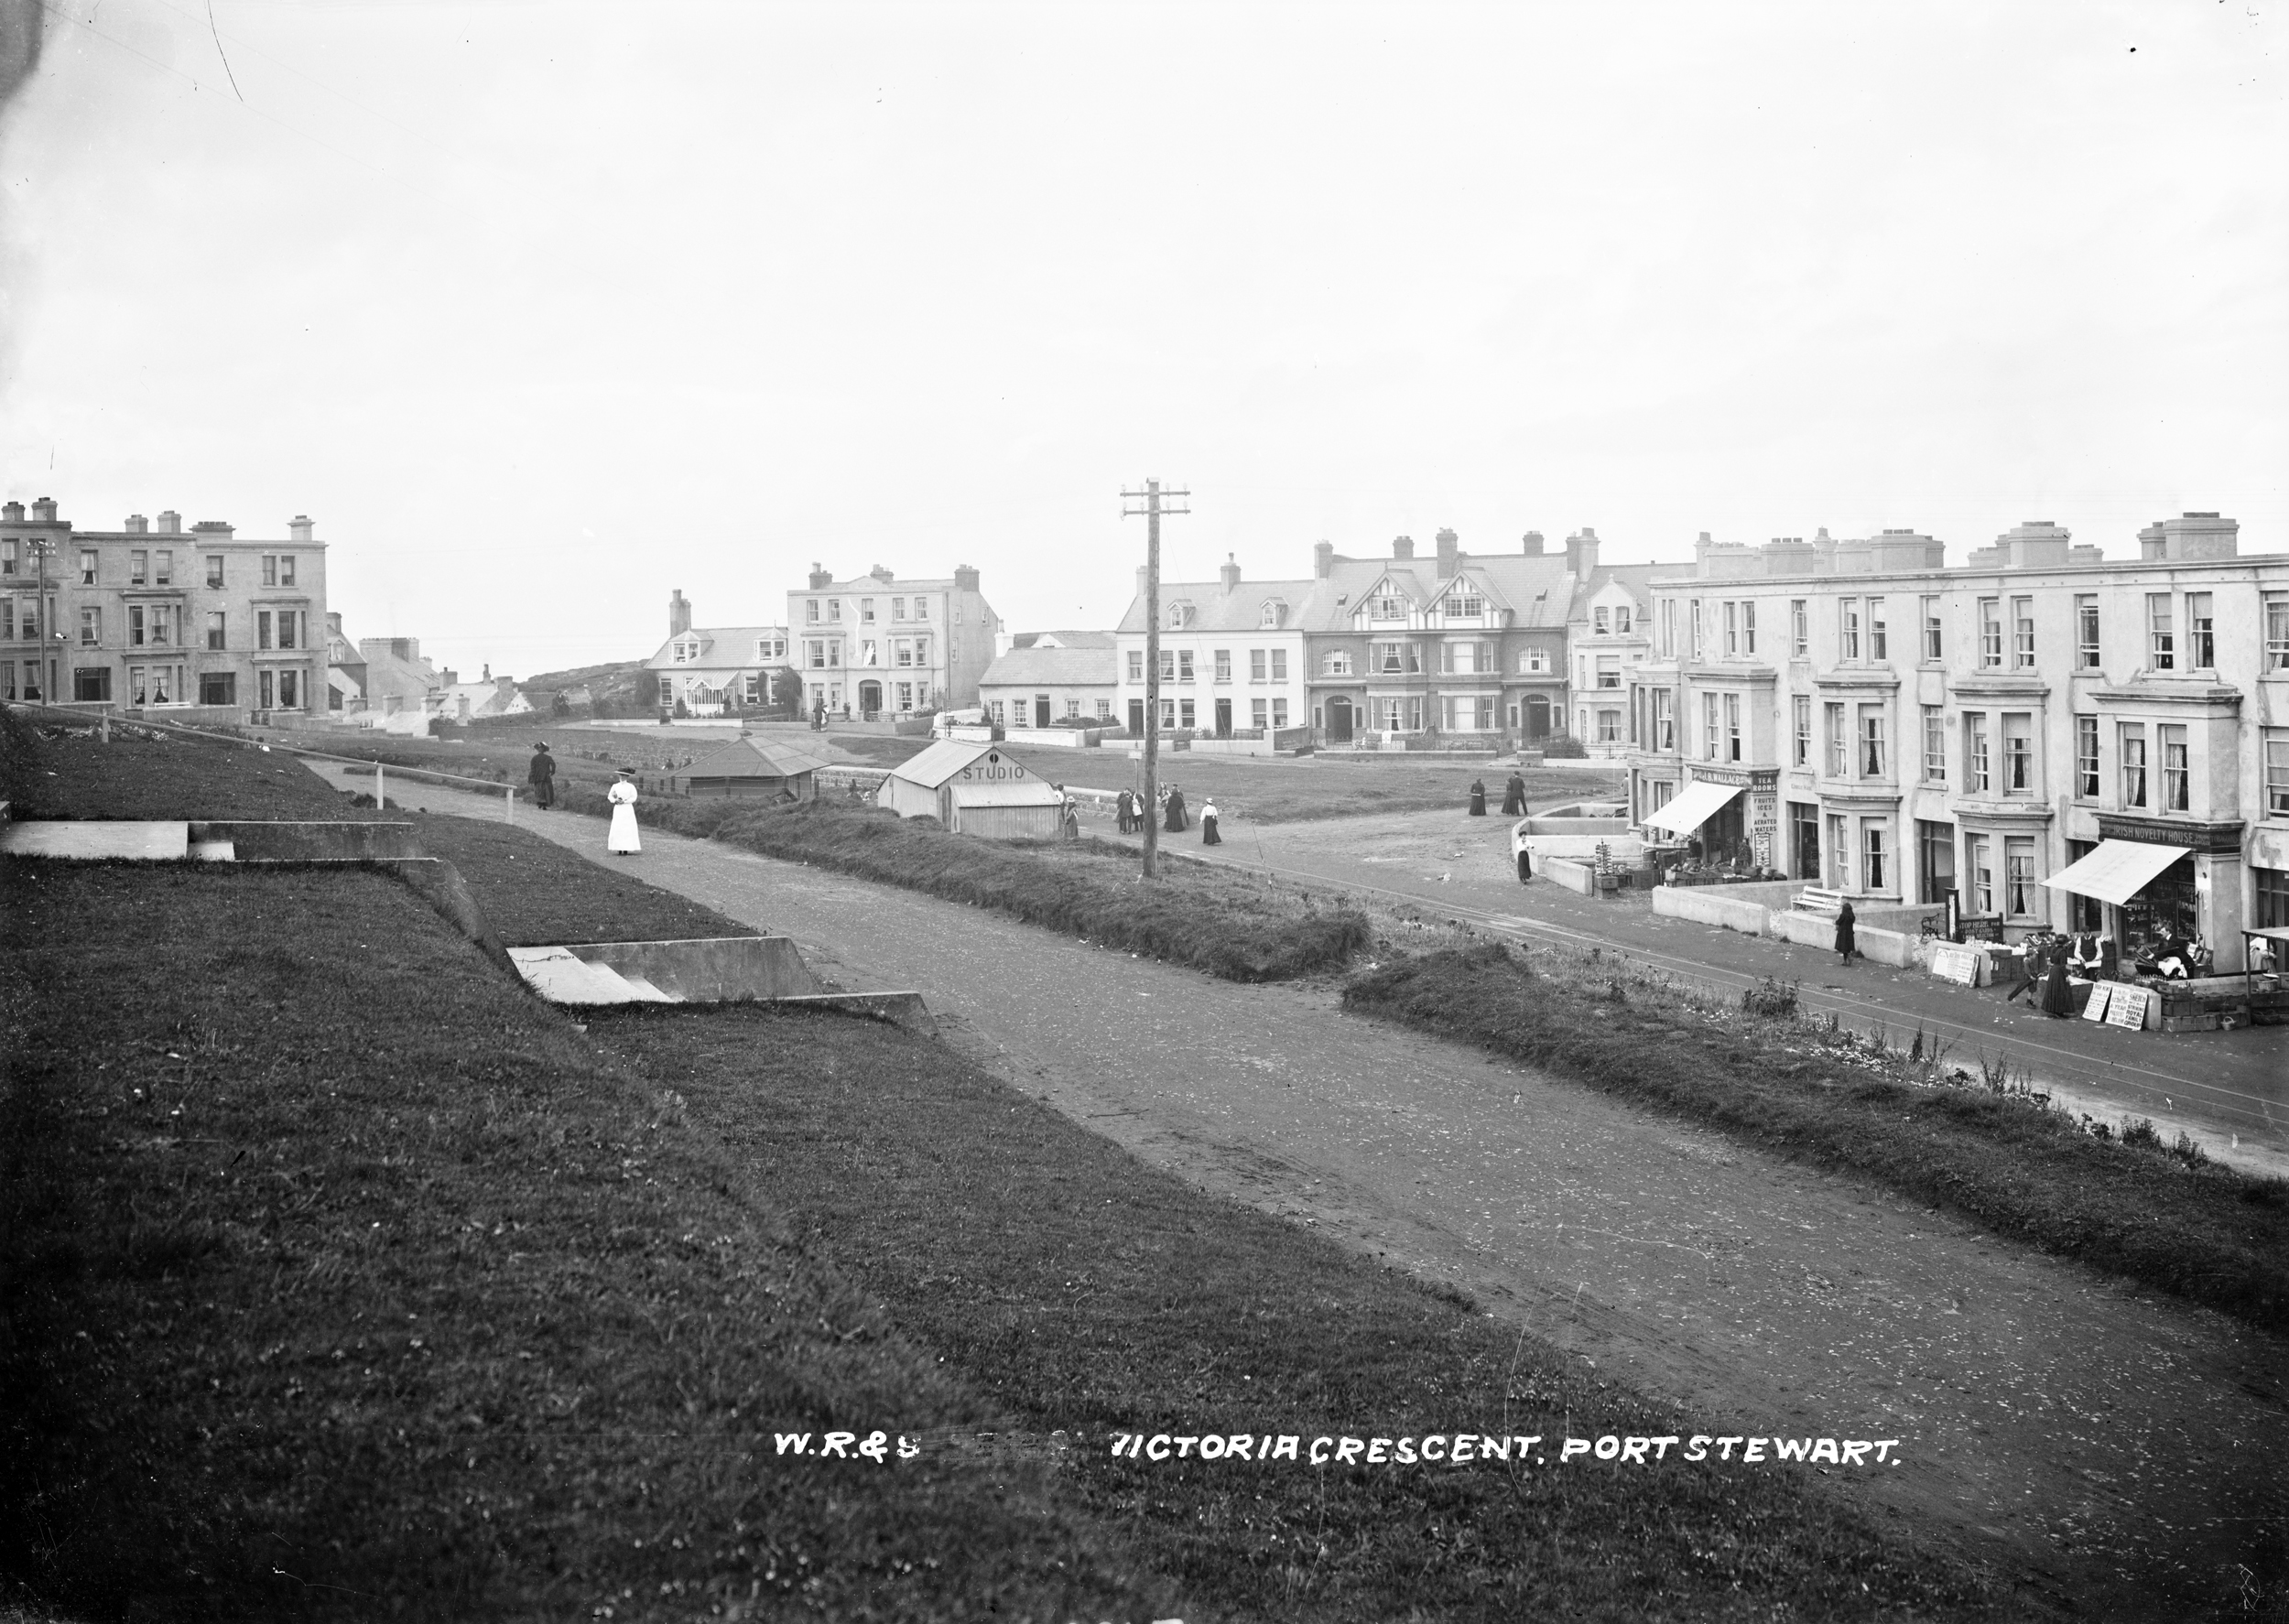 The Ups and Downs of Victoria Crescent